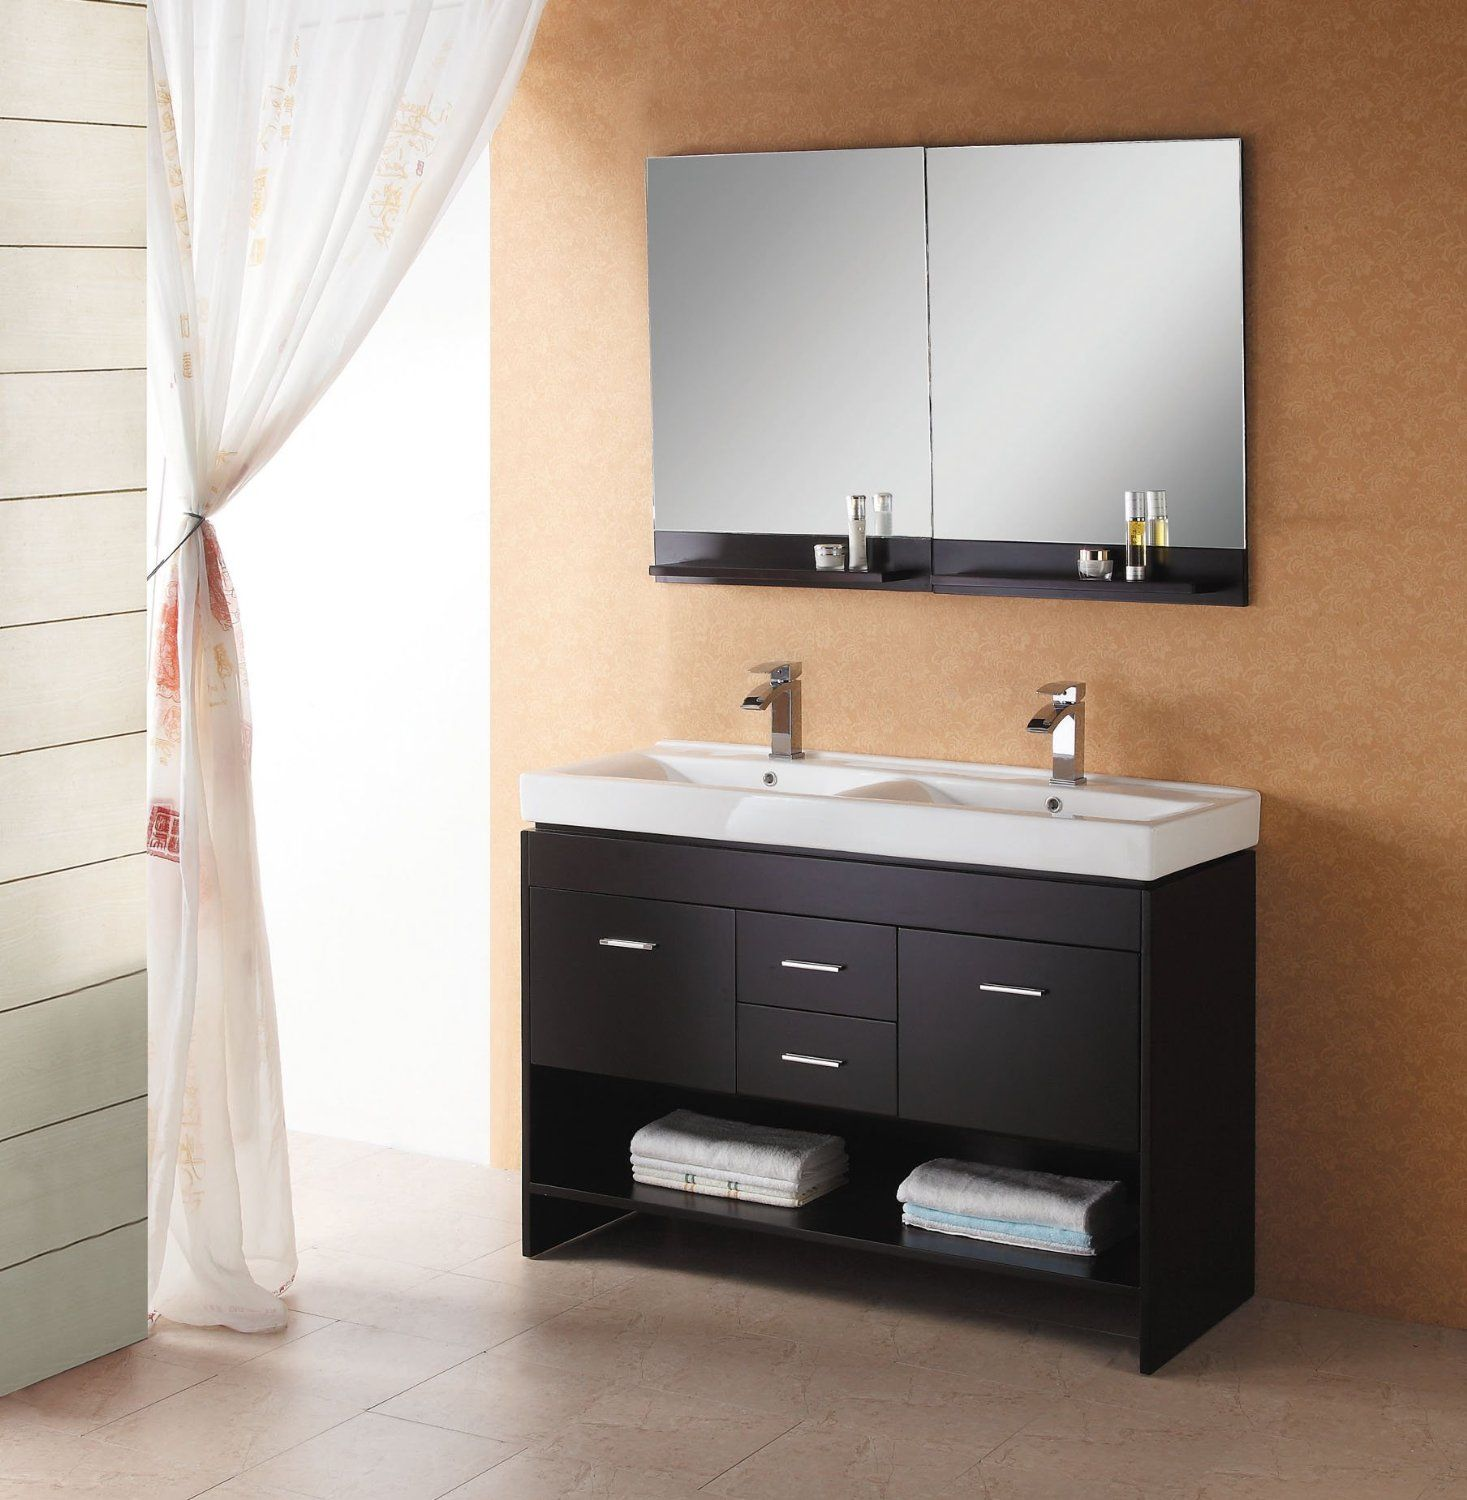 Bathroom Cool Black Custom Wooden Double Bathroom Sink Cabinets